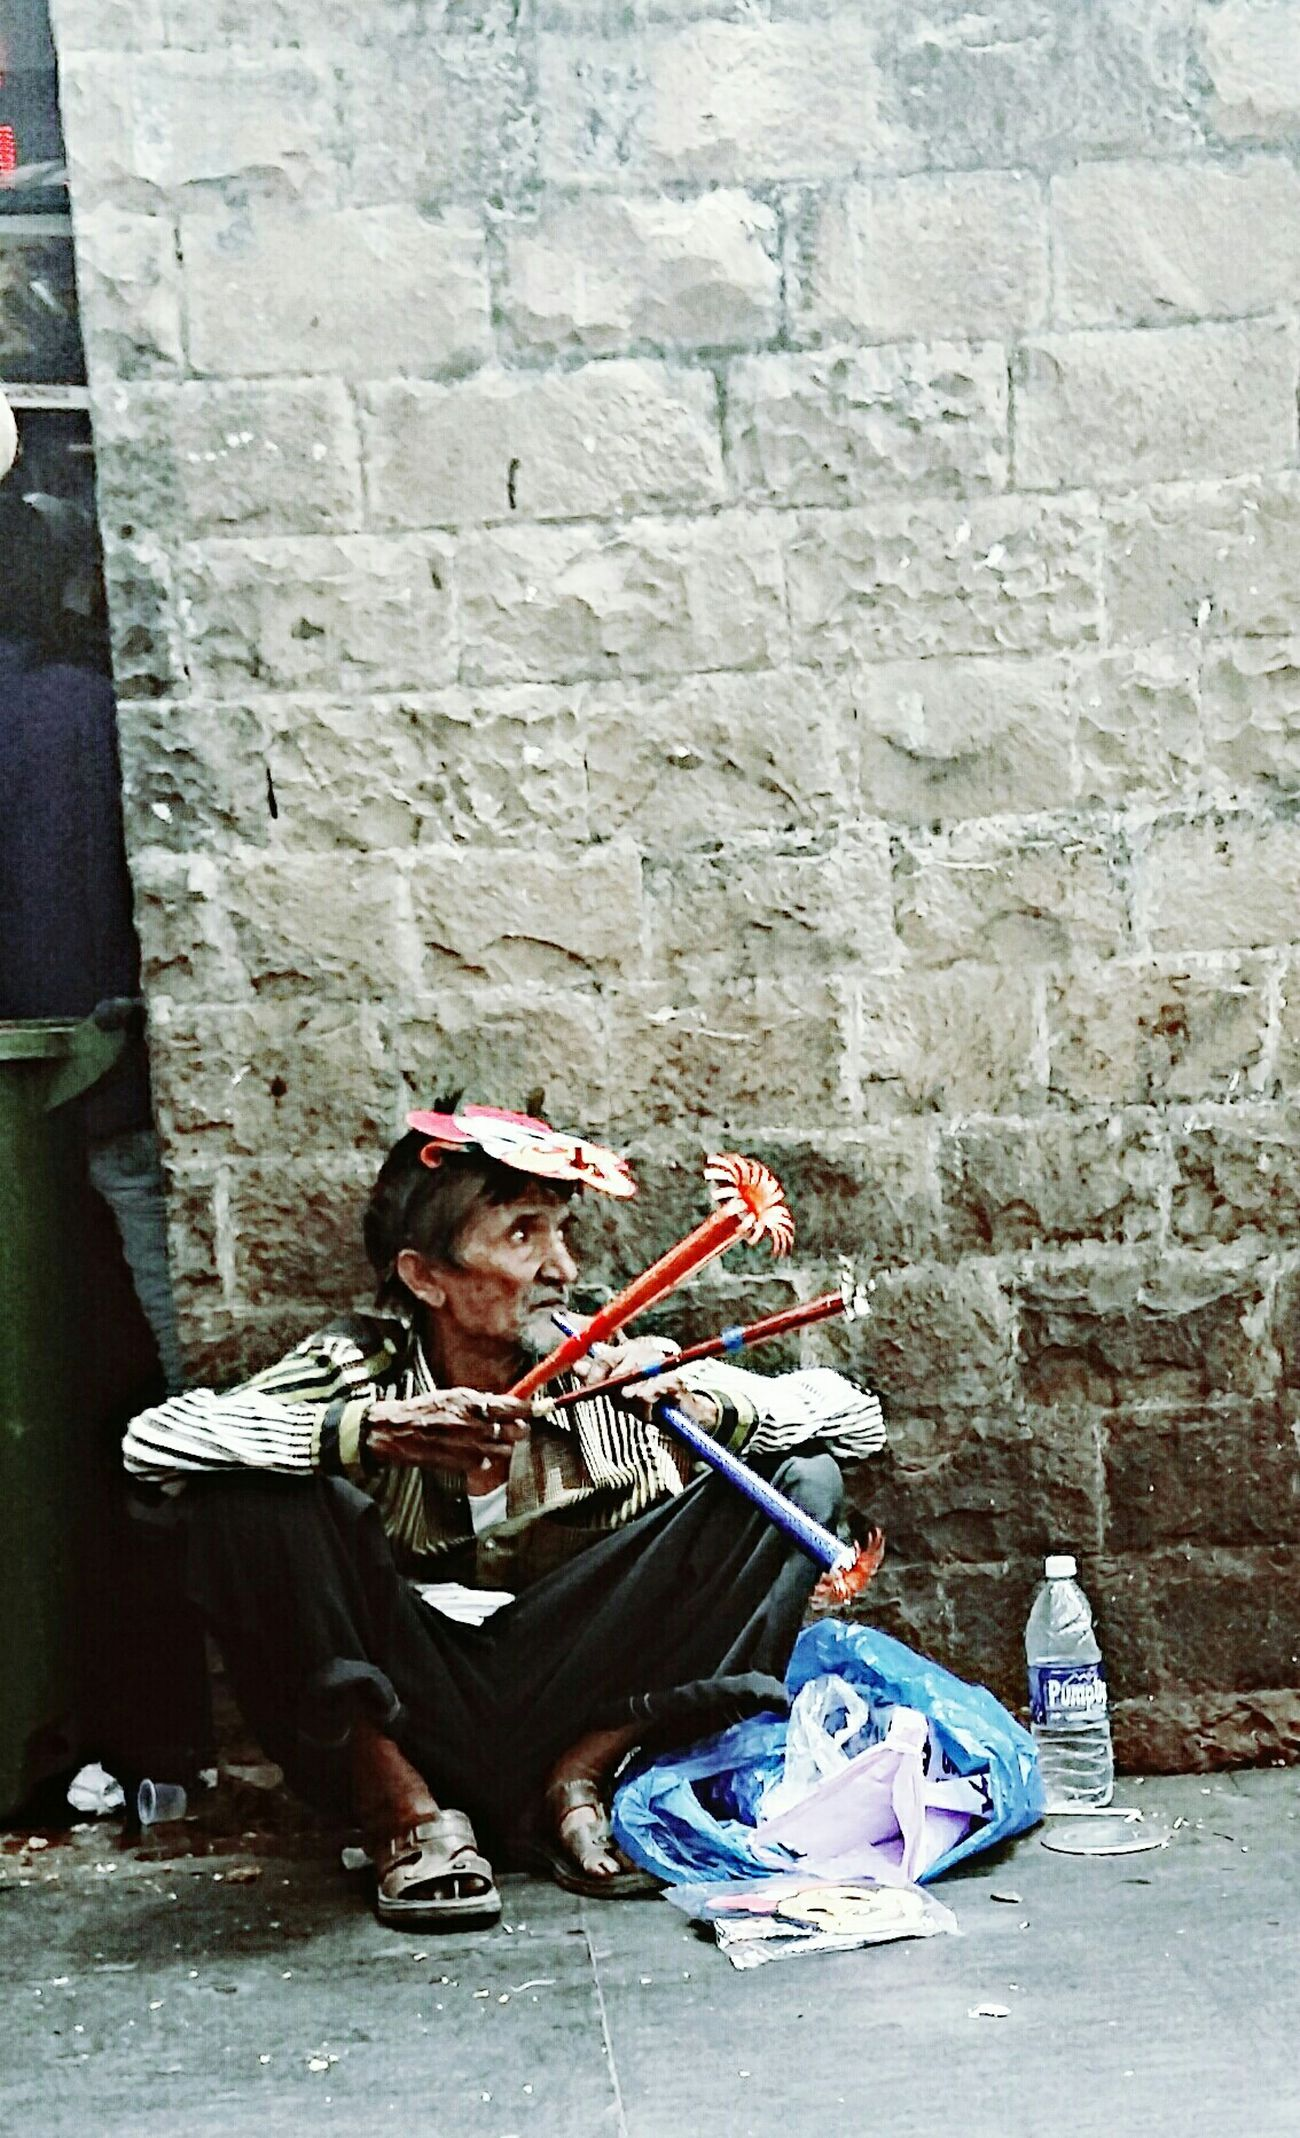 Happy Halloween Old Oldman He_want _to_rest But India Poverty Rural Poor  Poorpeople mumbai.....my click....mobile click....cute pichaa but not a good thing because this man is really need too rest he want too eat but noo buddy help him such a greedy persons not in india in all our the world Man Want To Rest